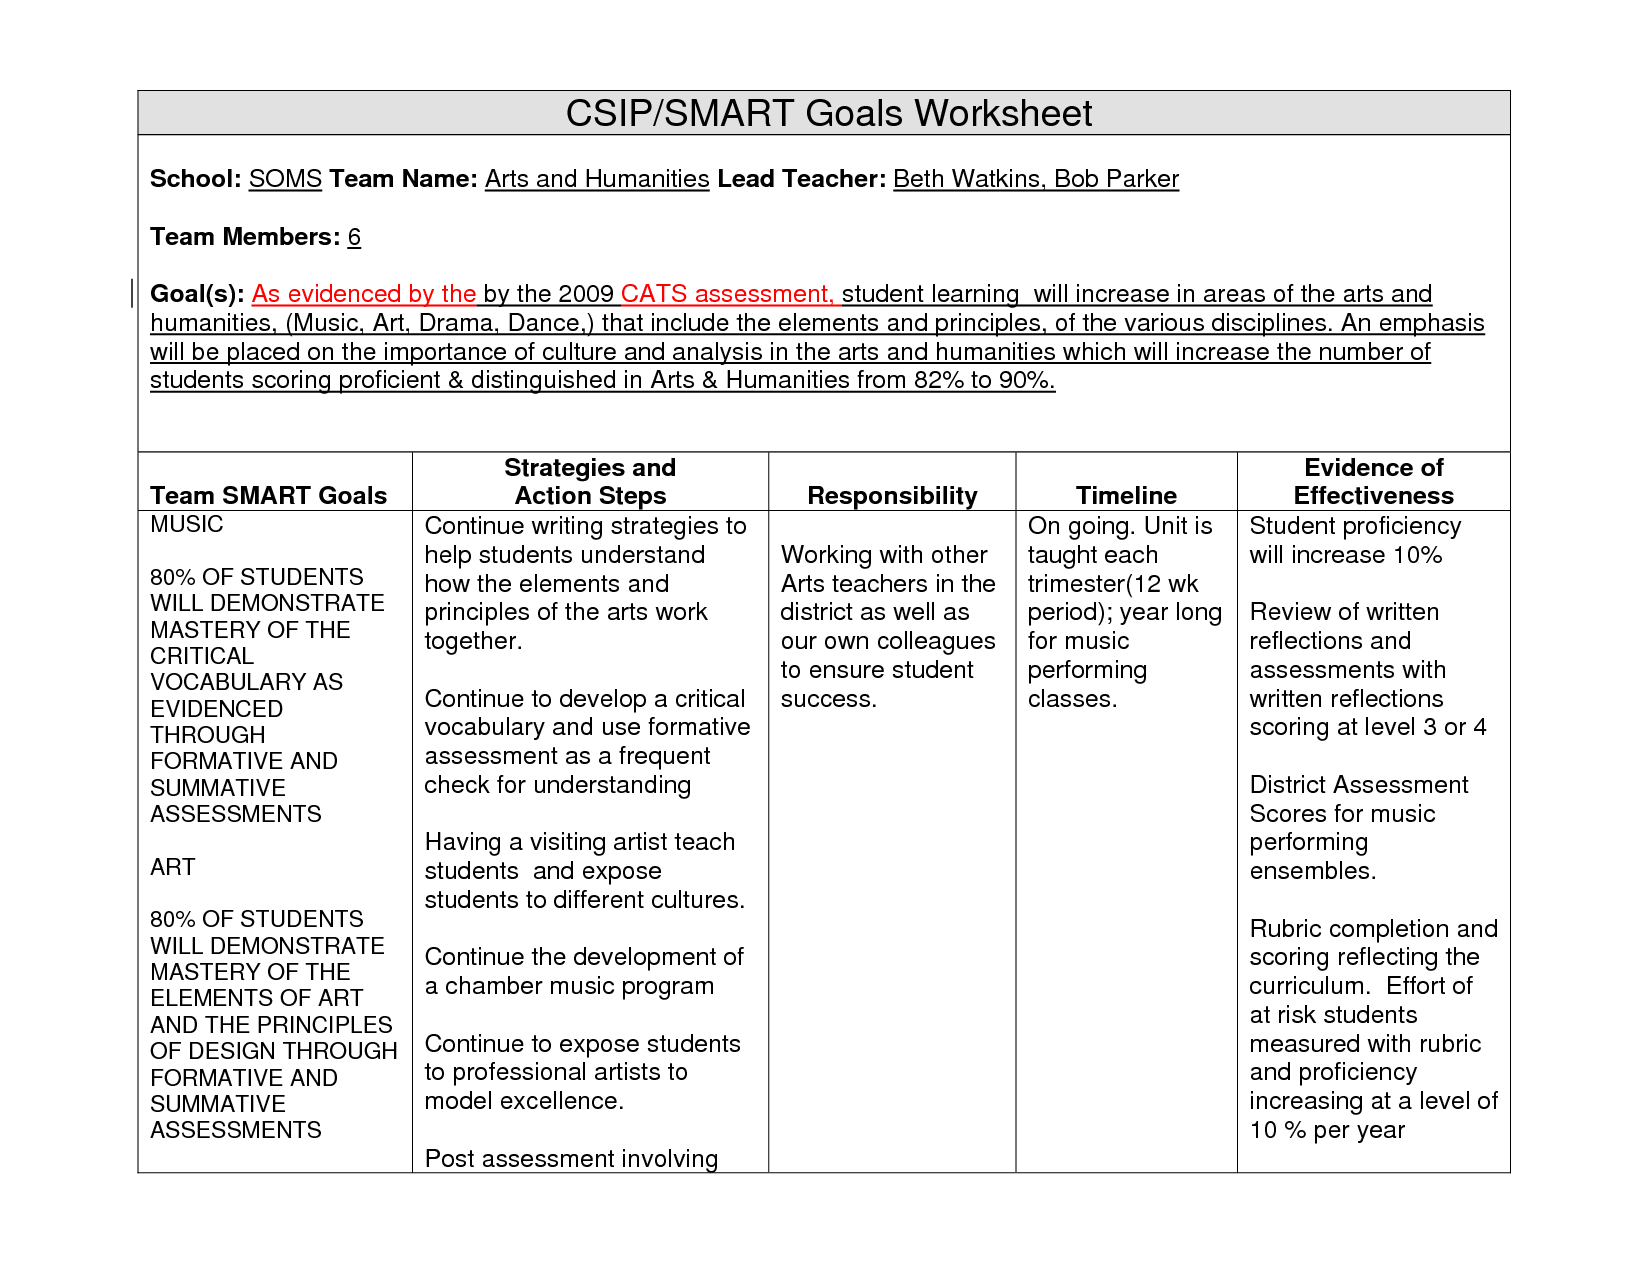 worksheet Smart Goals Worksheet For Students examples of student smart goals for art education worksheet